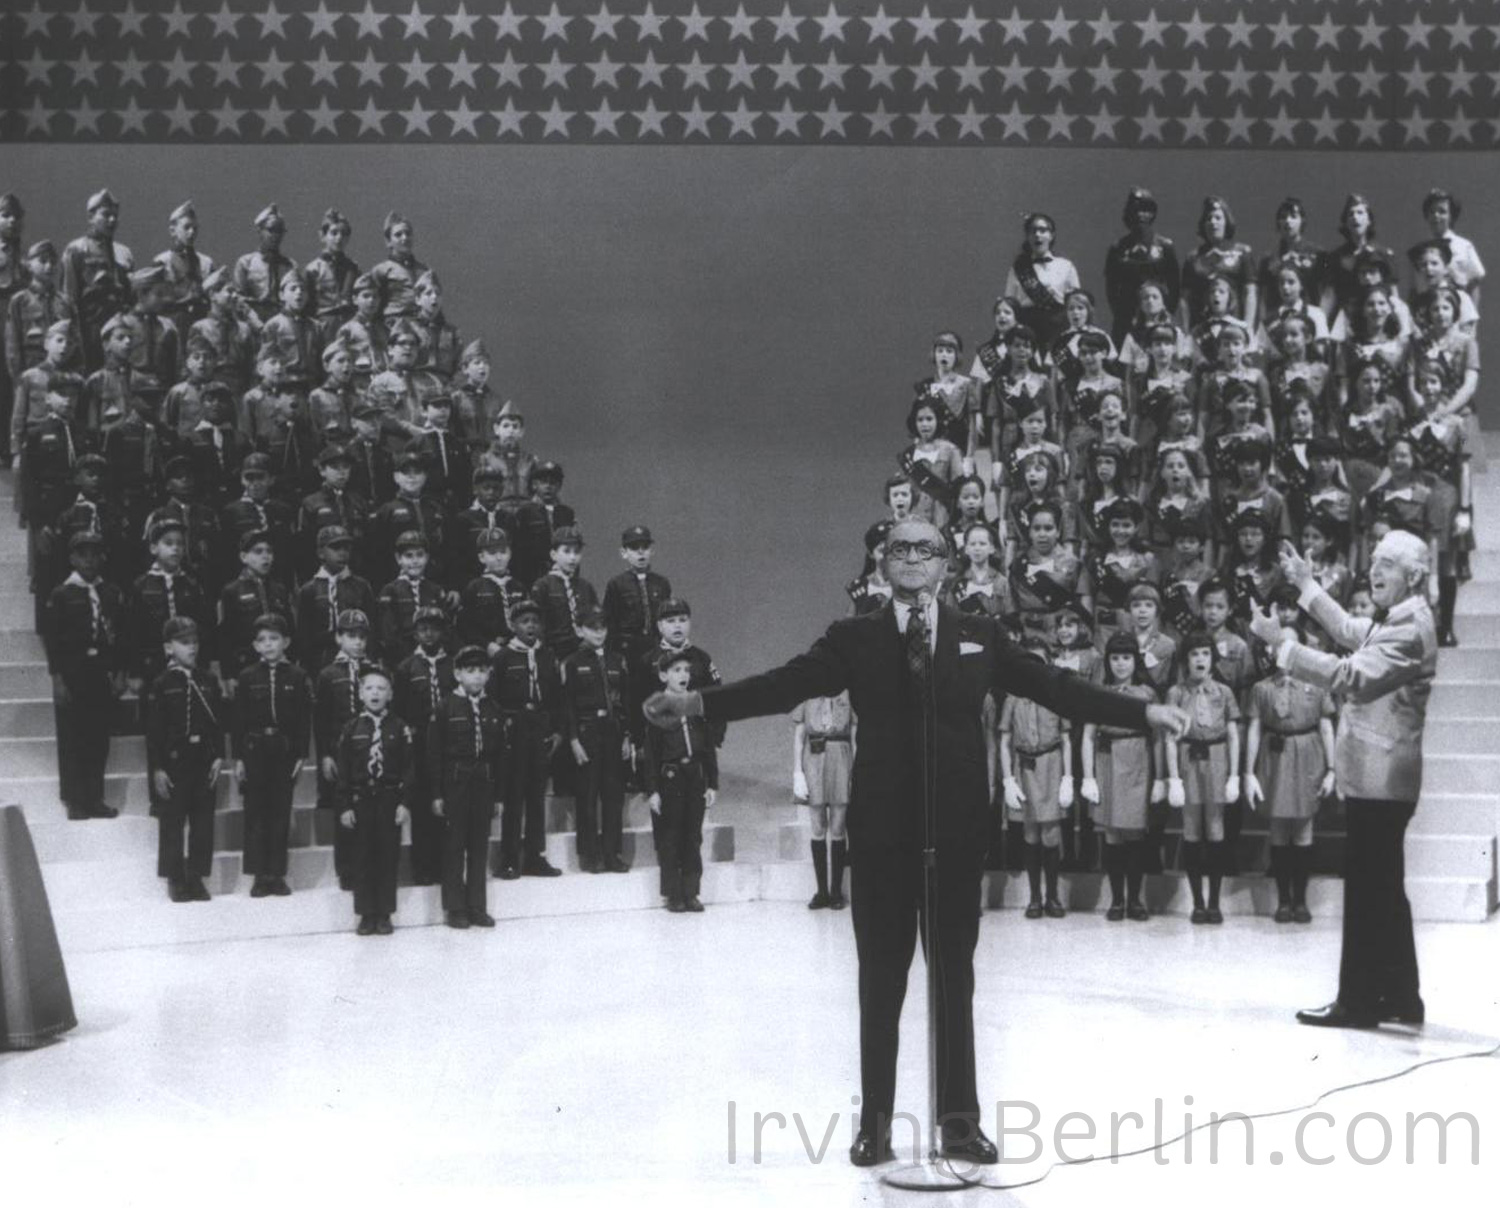 Ed Sullivan's 80th birthday salute to Irving Berlin